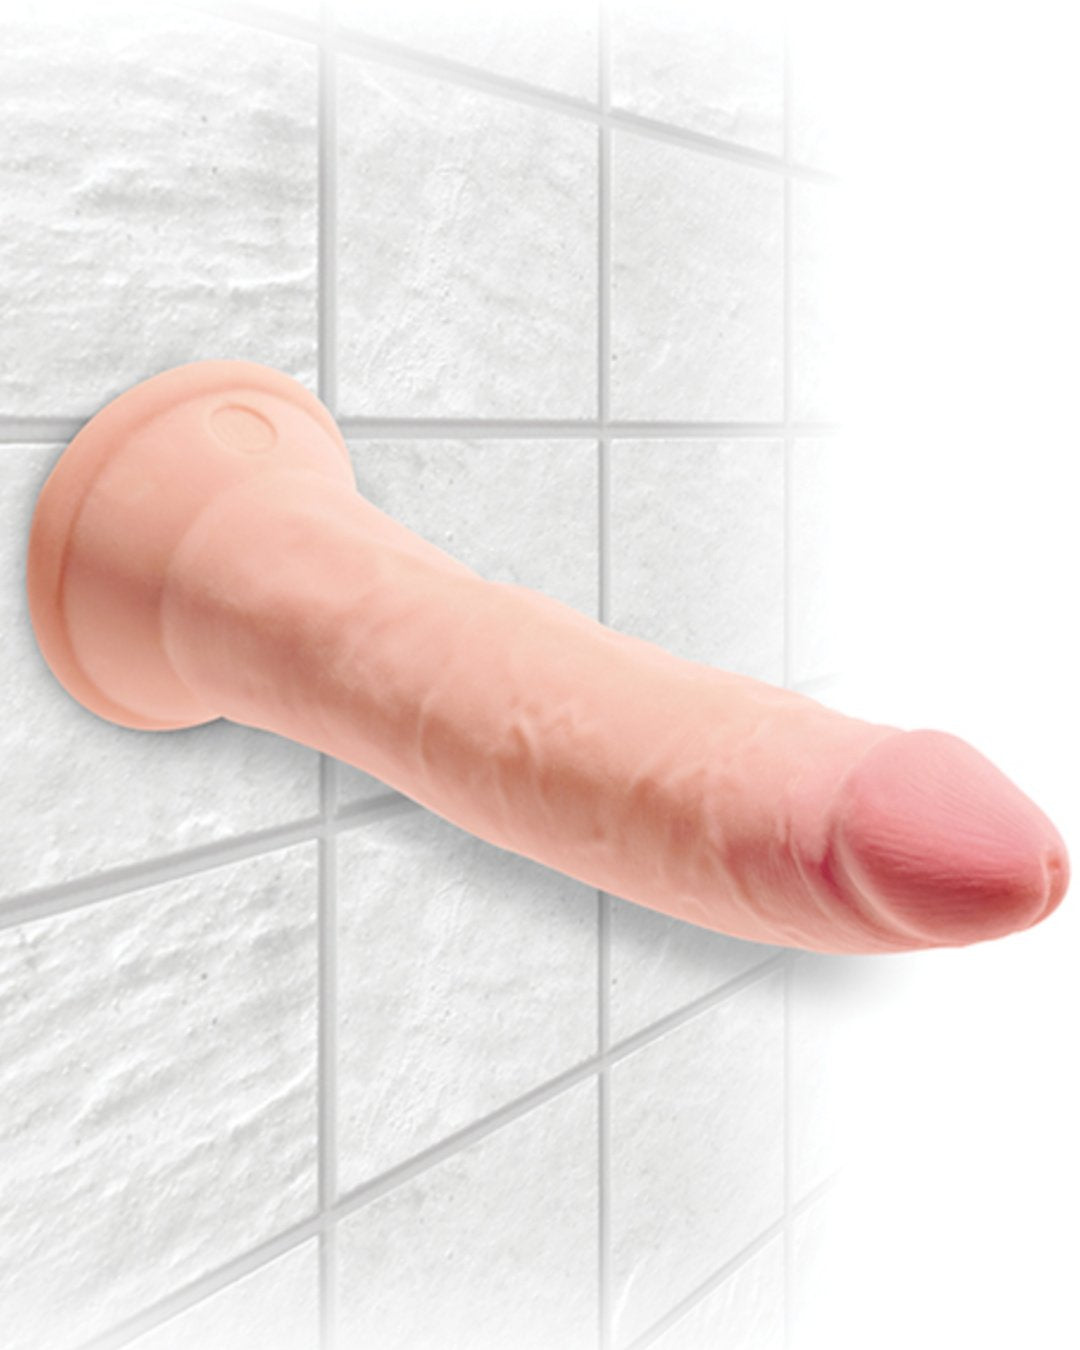 King Cock Plus Triple Density 7 Inch Suction Cup Dildo horizontal and suction cupped to a tile wall